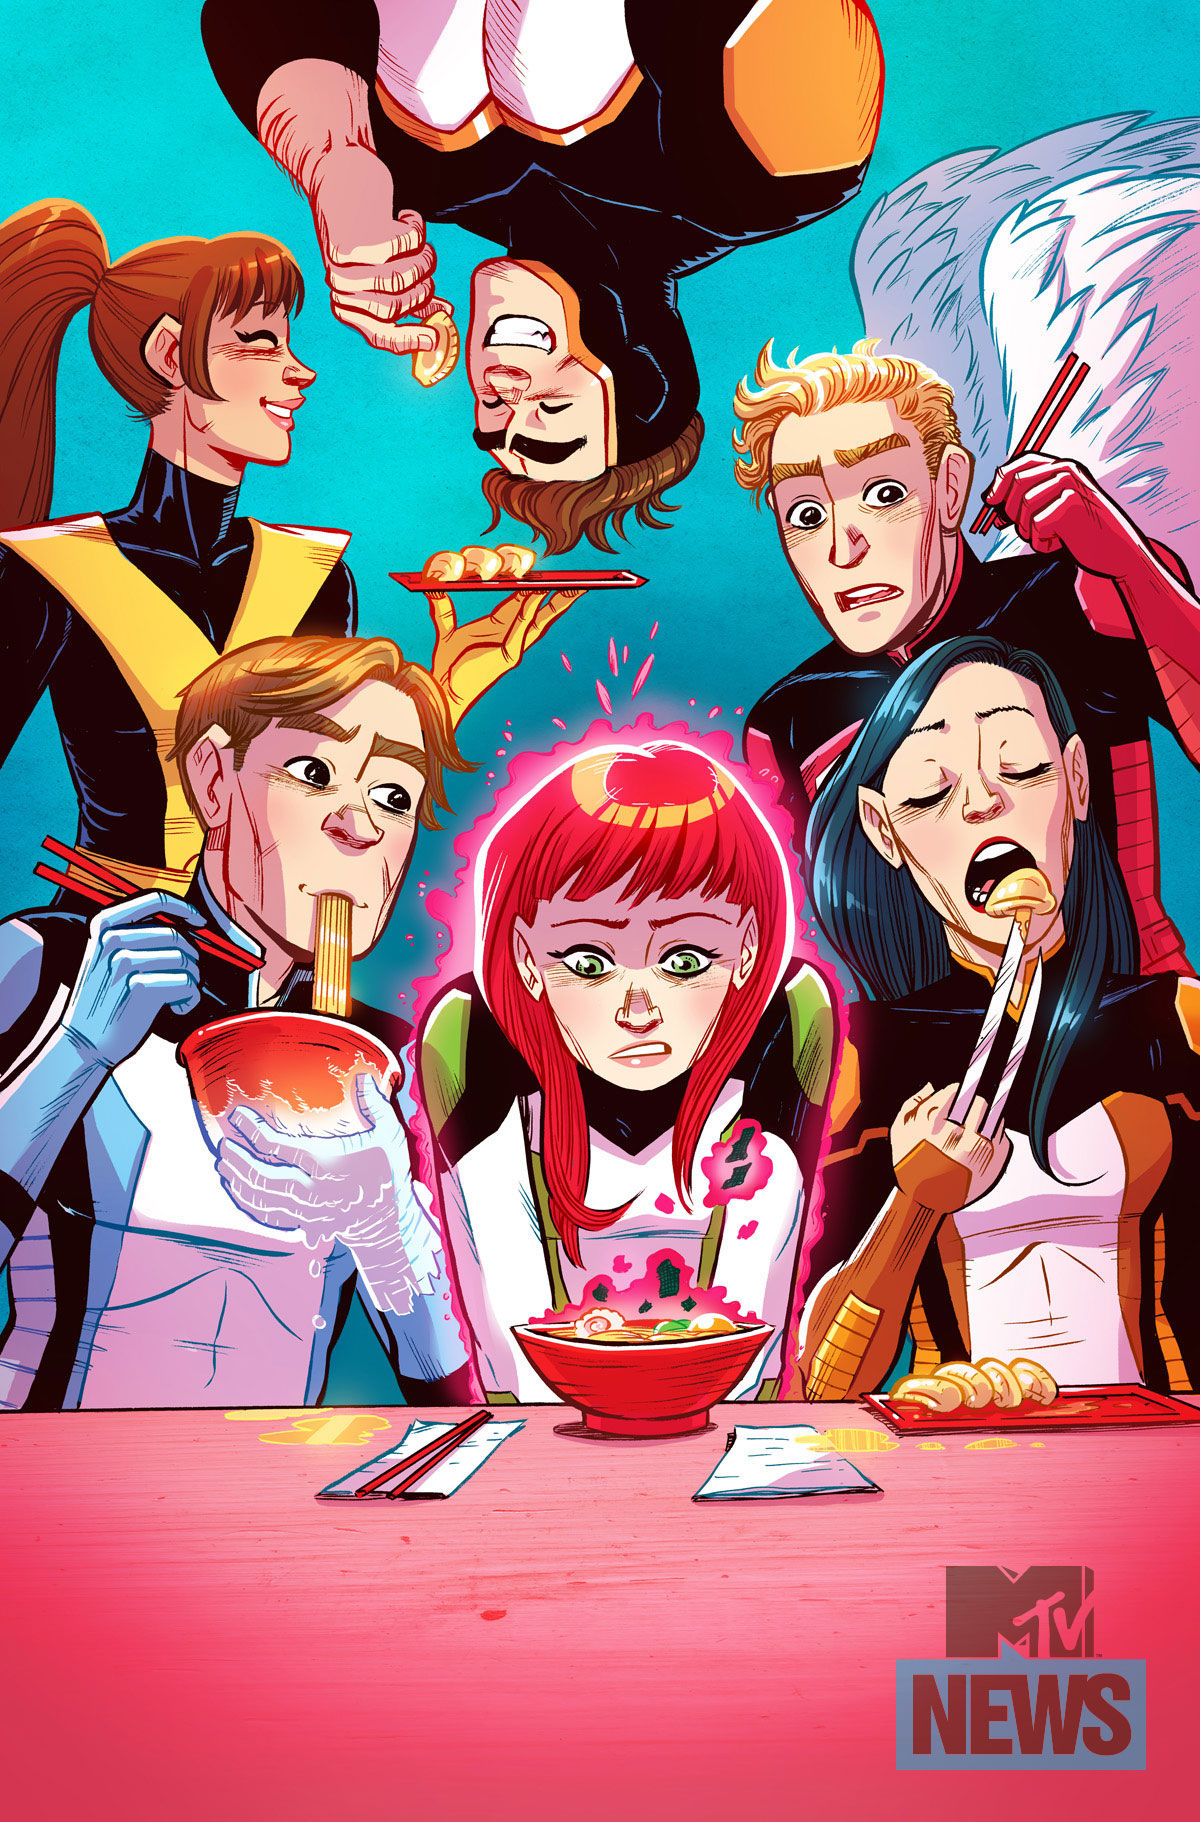 All-New X-Men #39 - Faith Erin Hicks, Paulina Ganuchea